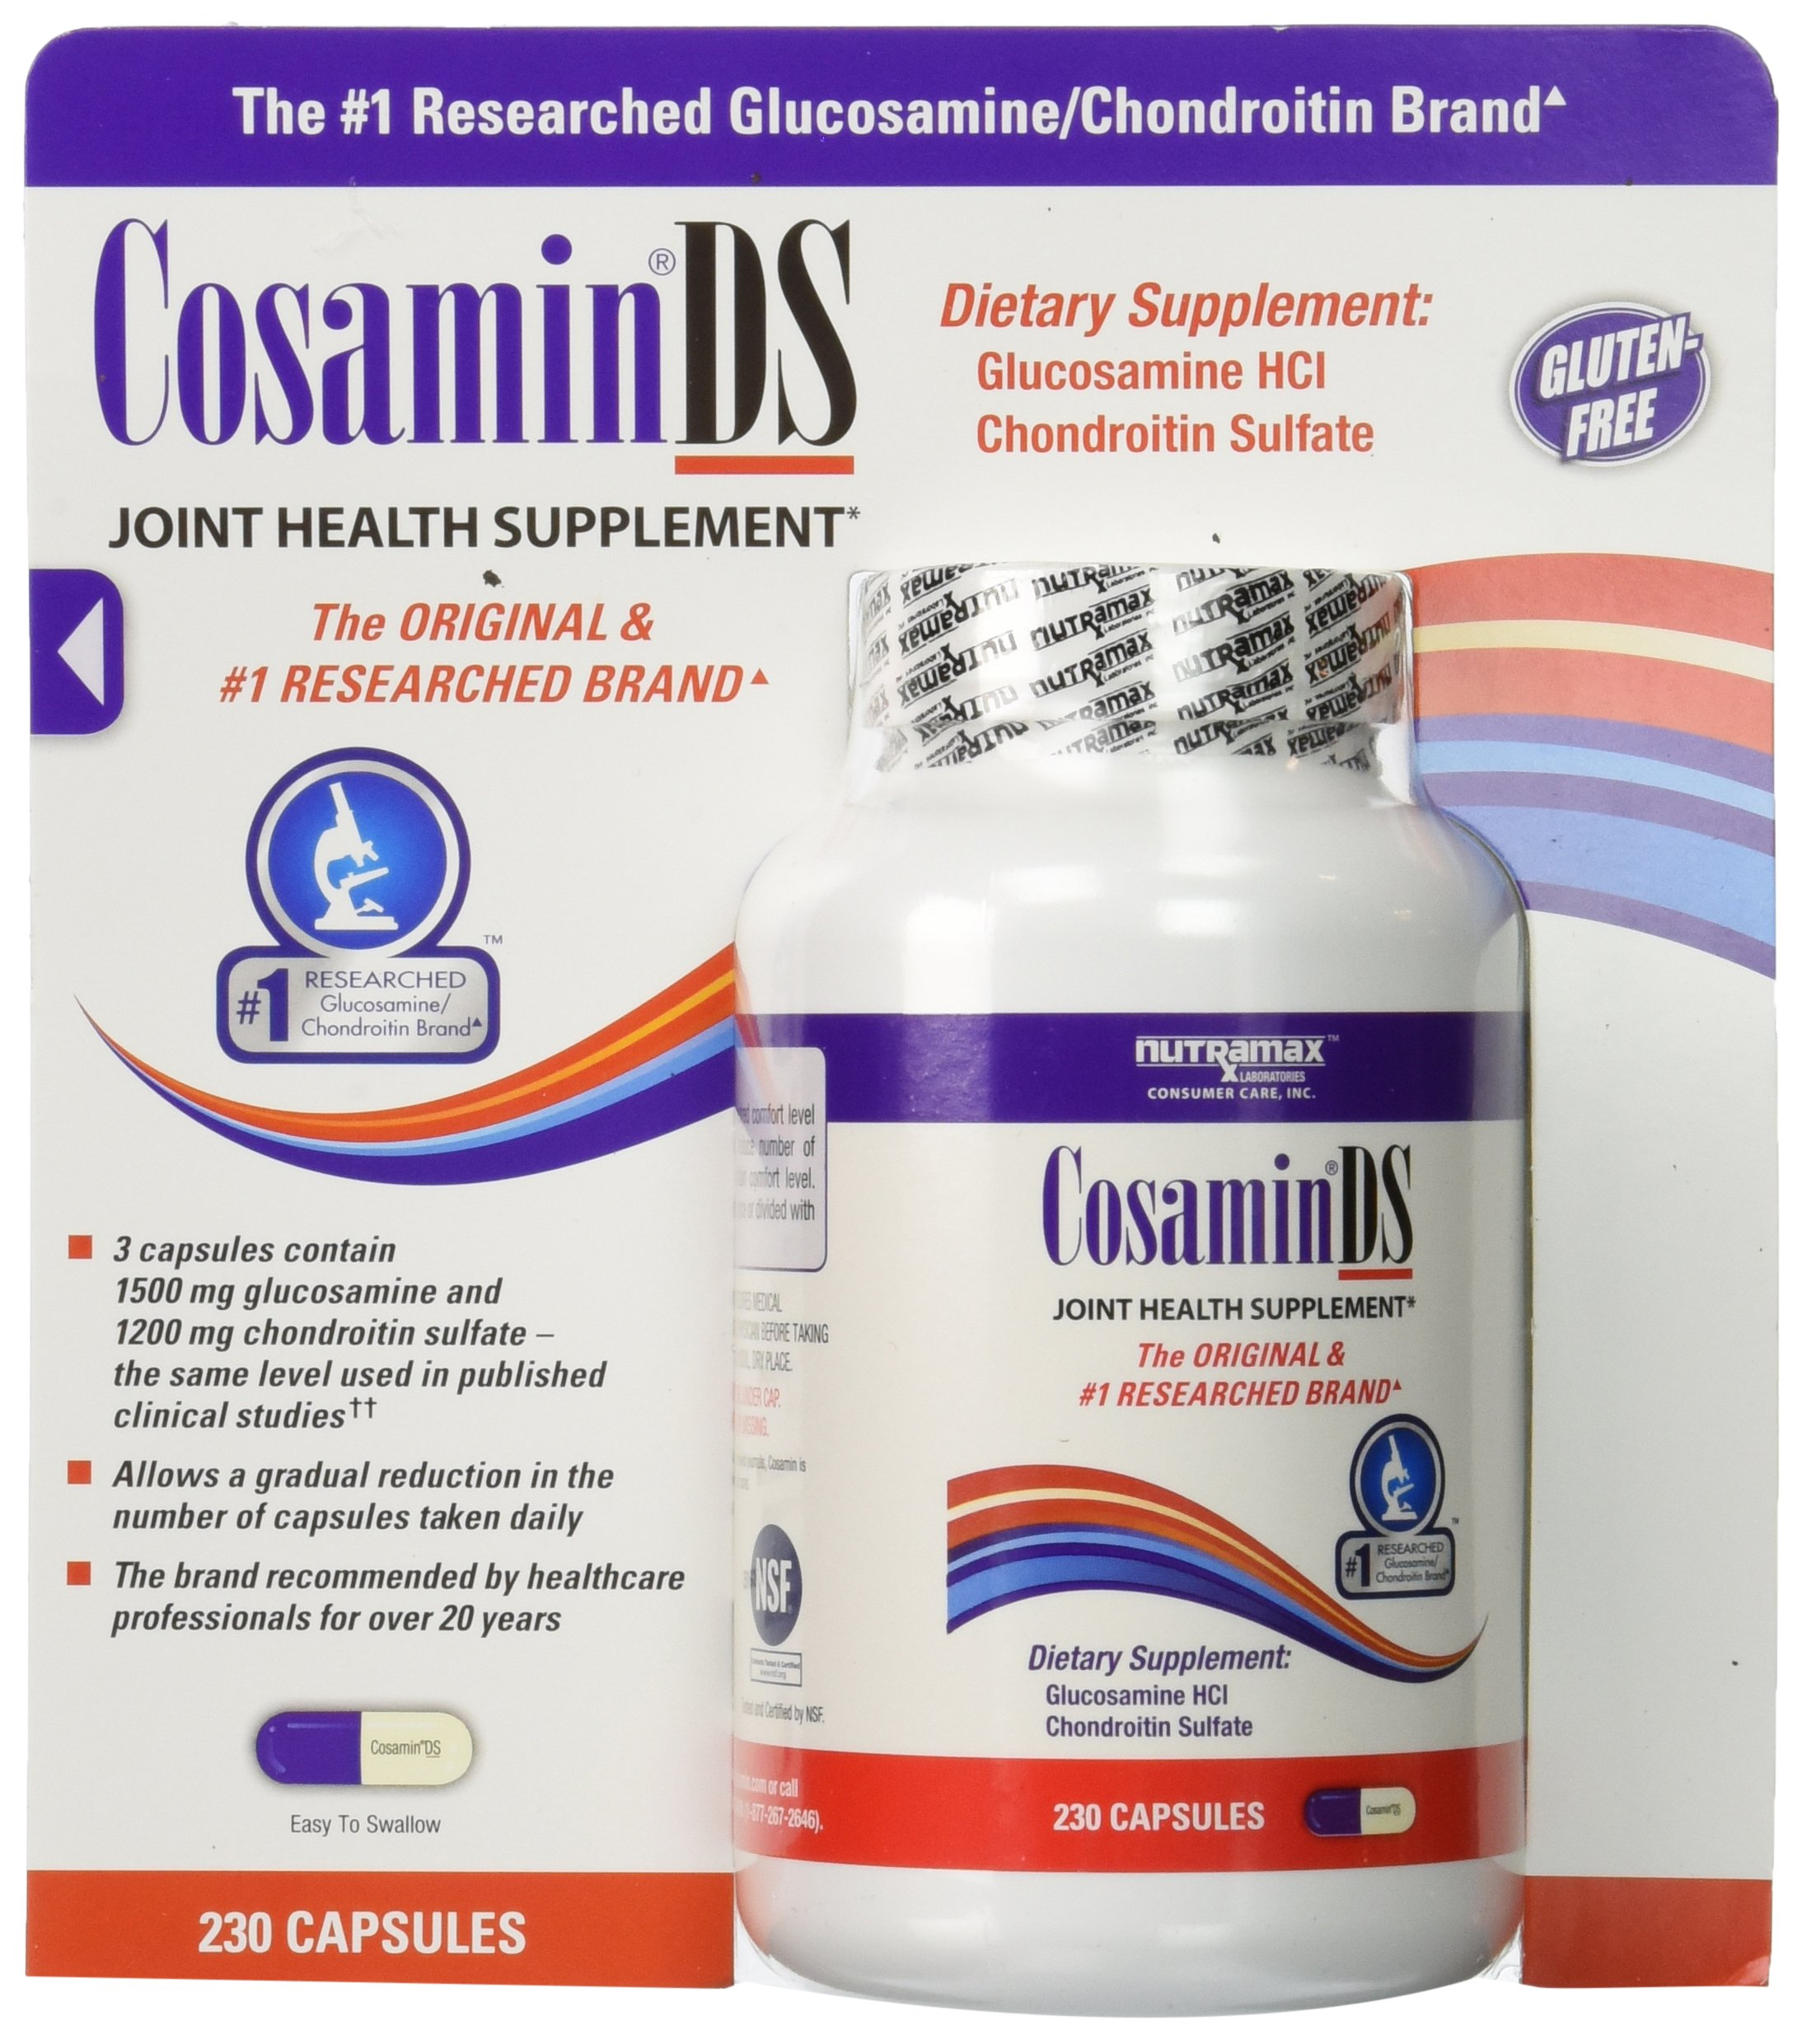 Cosamin DS - 2 Bottles, 230 Capsules Each by Cosamin DS